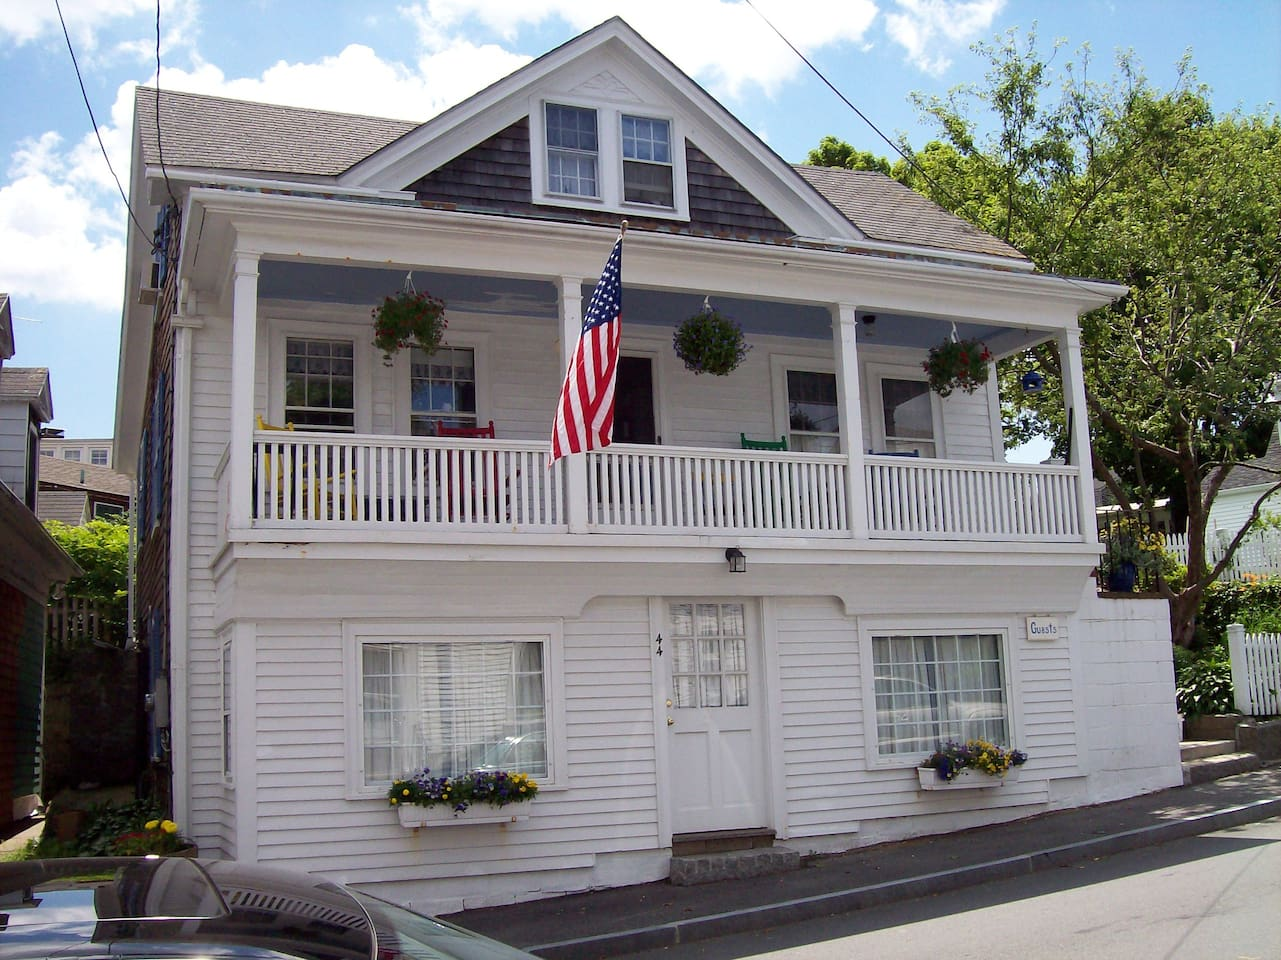 Top floor single room or 2 rooms and bath for private suite option. Private entrance off porch.